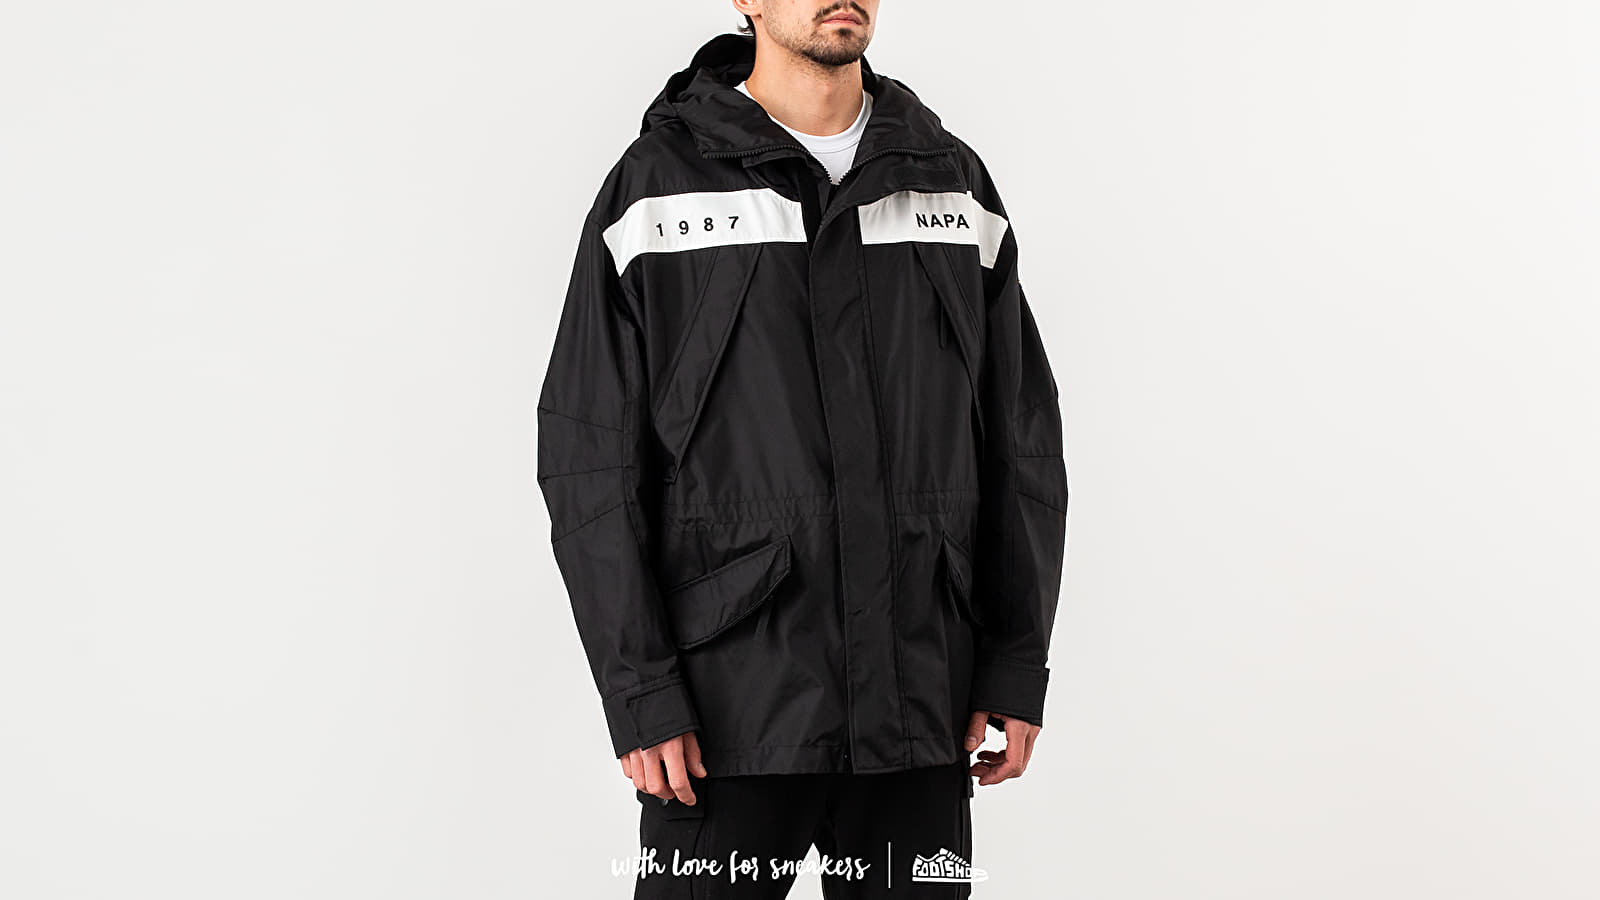 Coach Jackets NAPA by Napapijri Epoch Summer Jacket Black